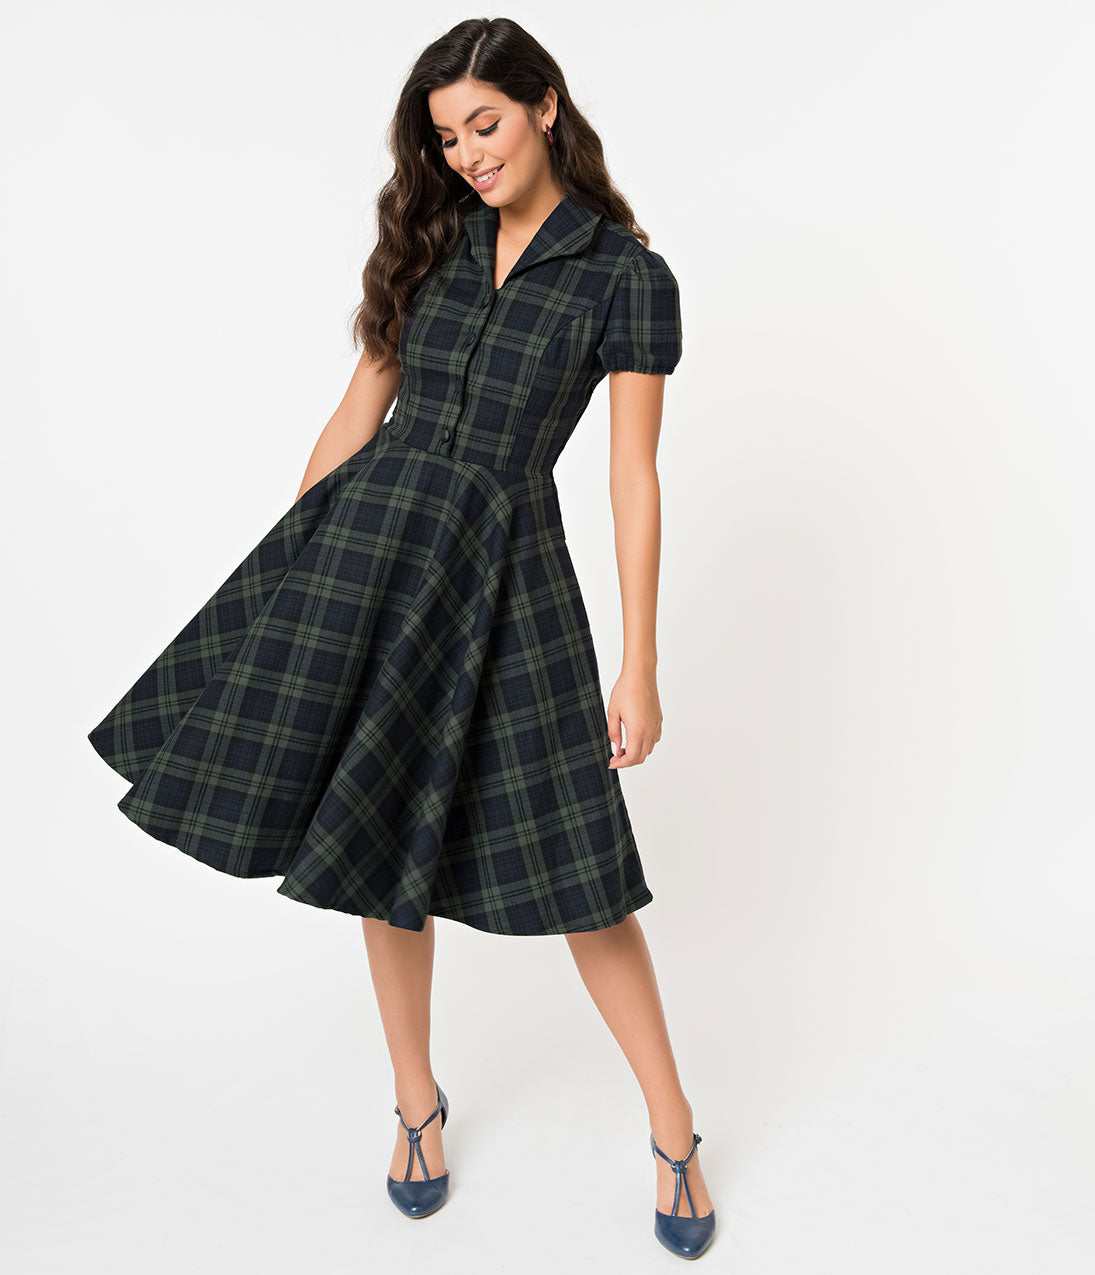 Old Fashion Dresses for Teens